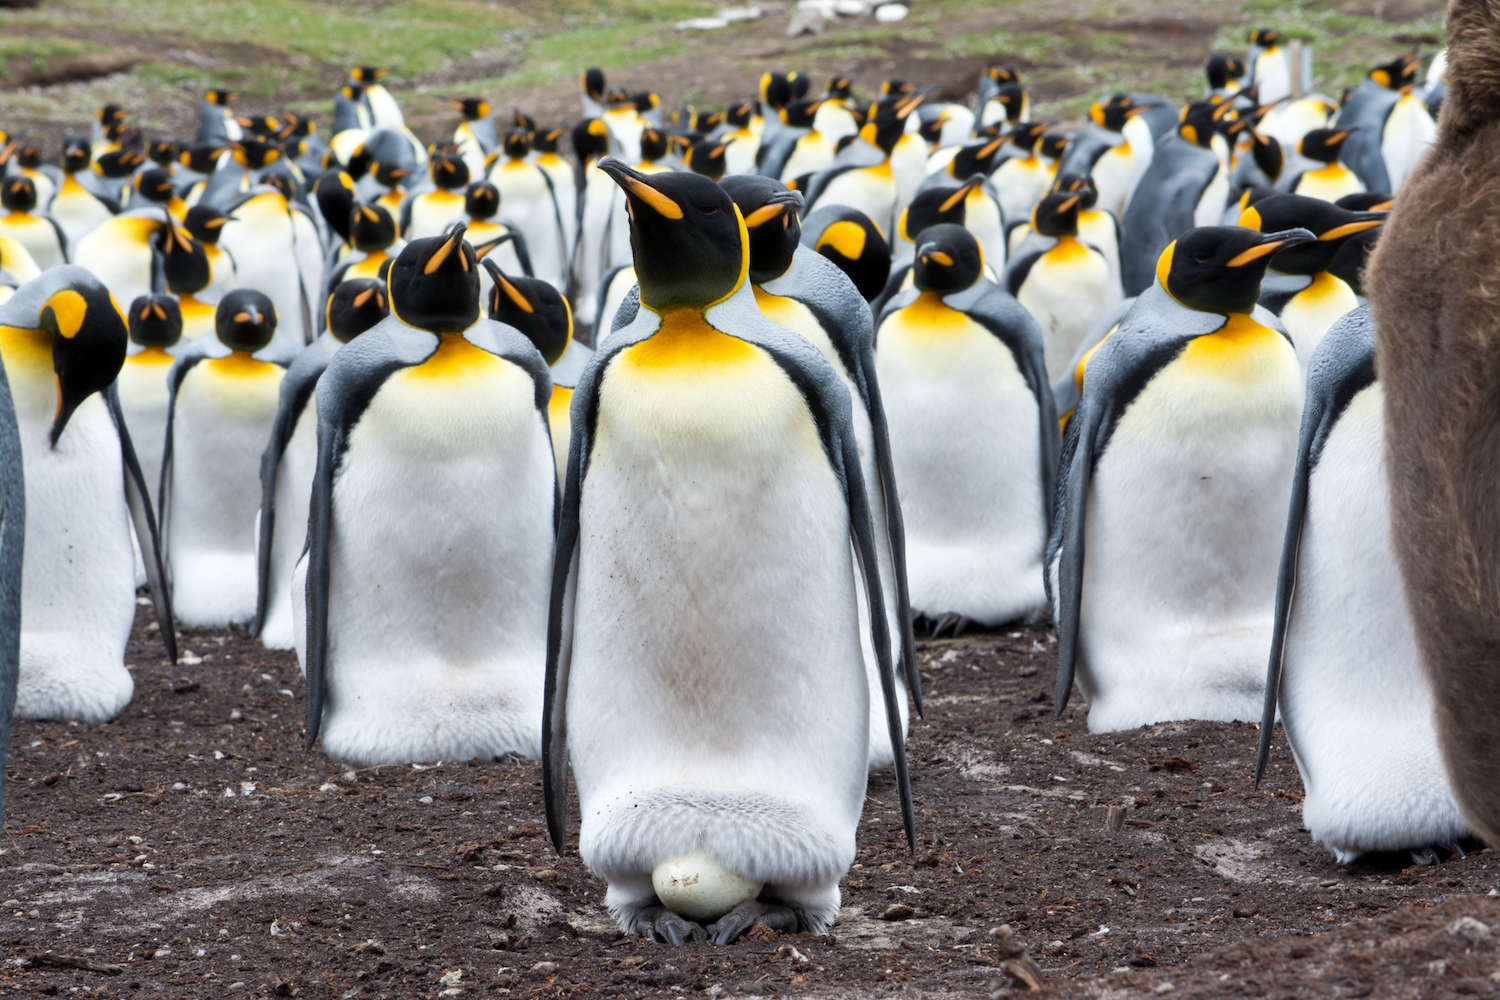 World's largest King Penguin colony has shrunk nearly 90%